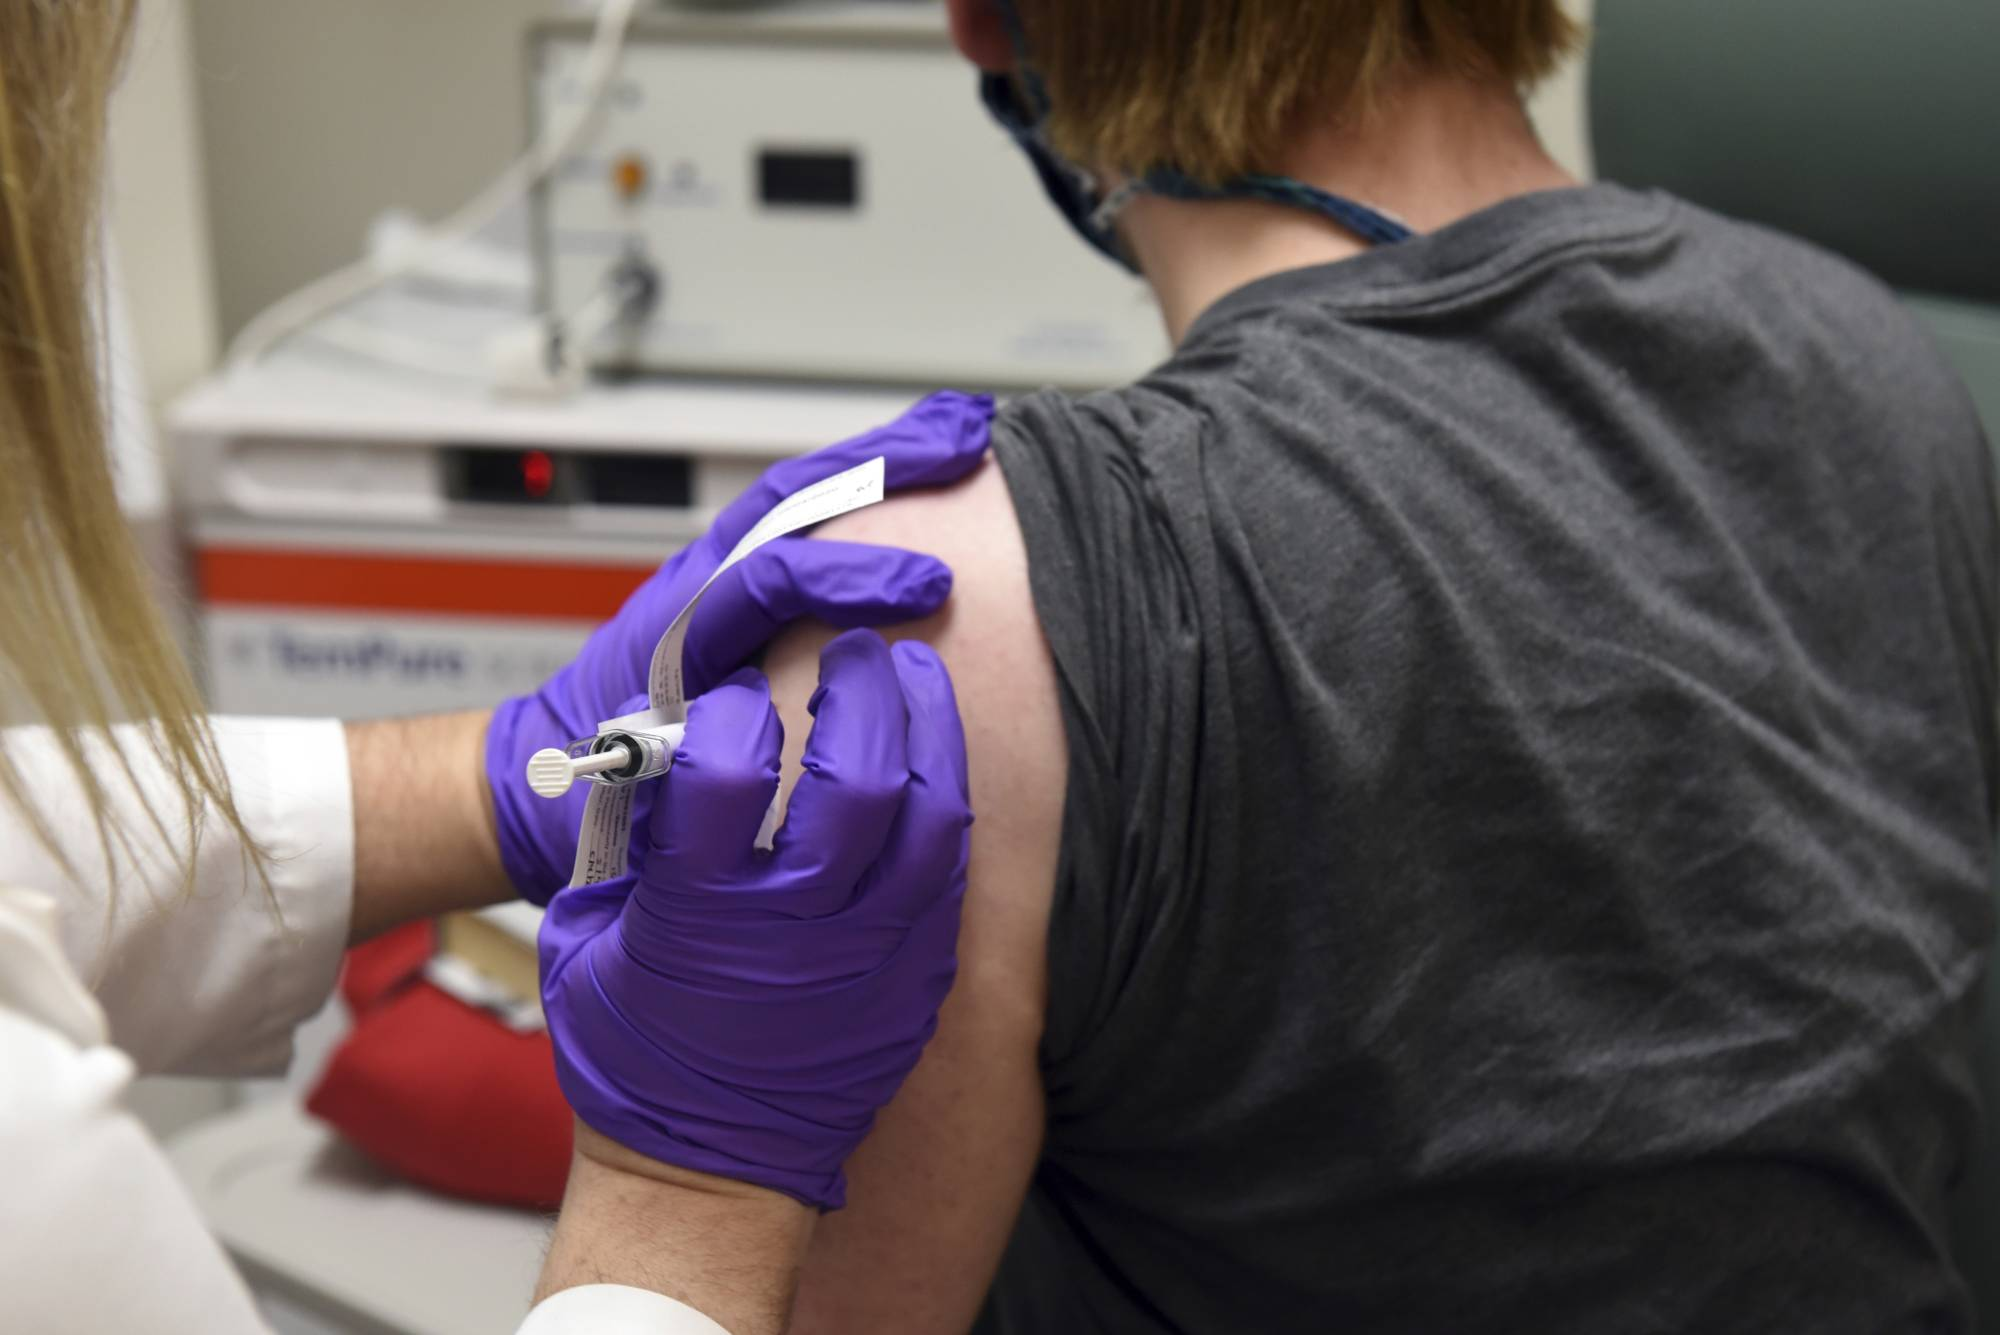 With trials taking place for numerous potential coronavirus vaccines around the world, now is the time for governments to prepare for their proper distribution. | UNIVERSITY OF MARYLAND SCHOOL OF MEDICINE / VIA AP